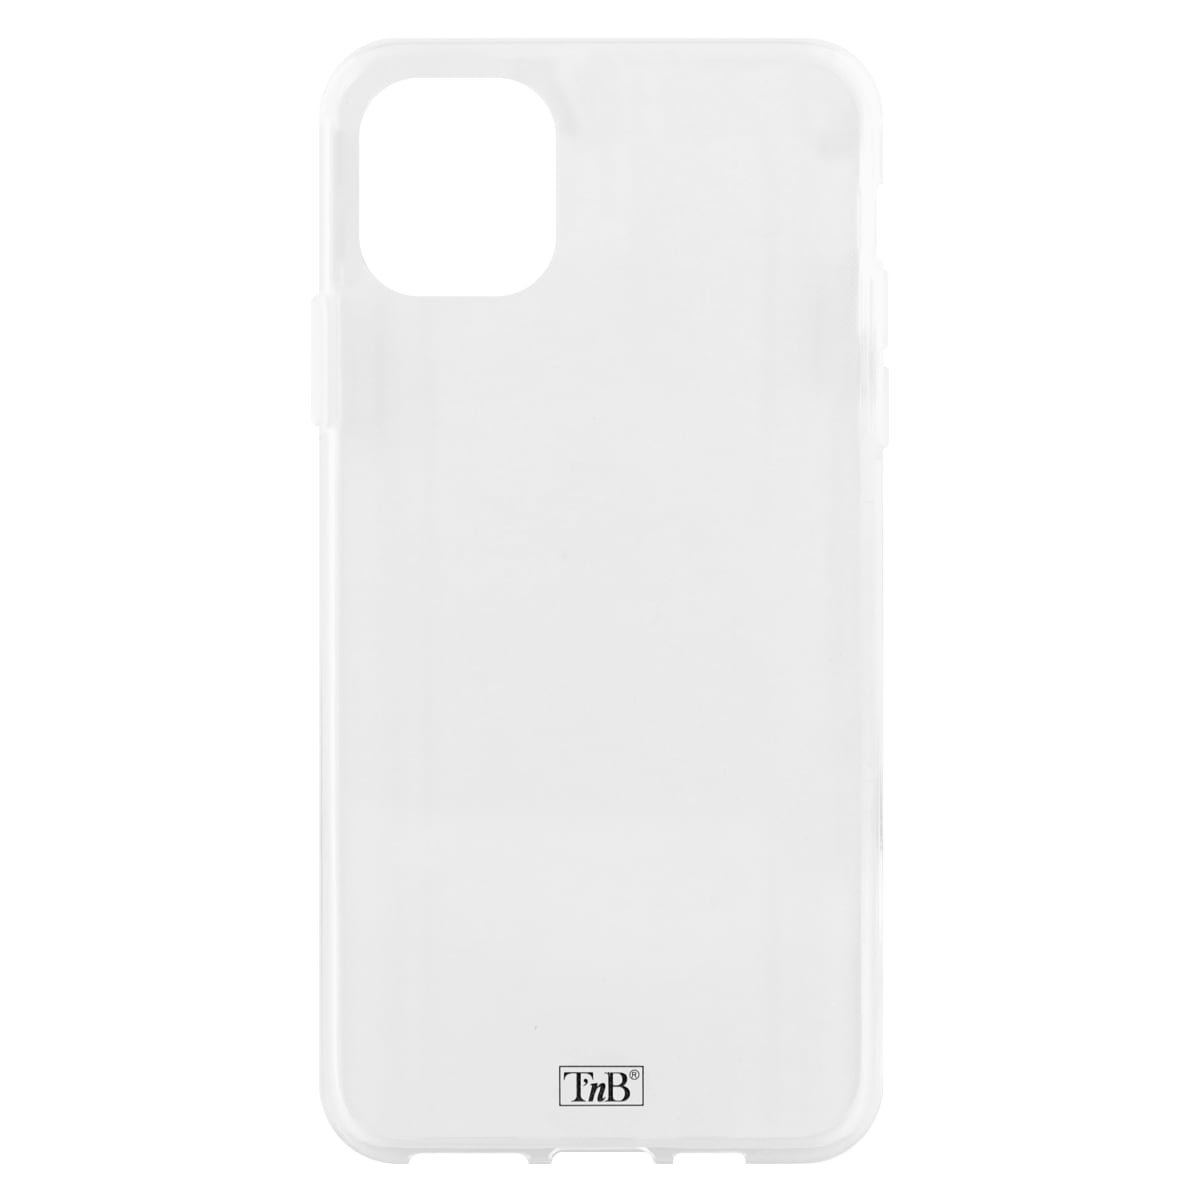 Soft case for IPhone 11 Pro Max.